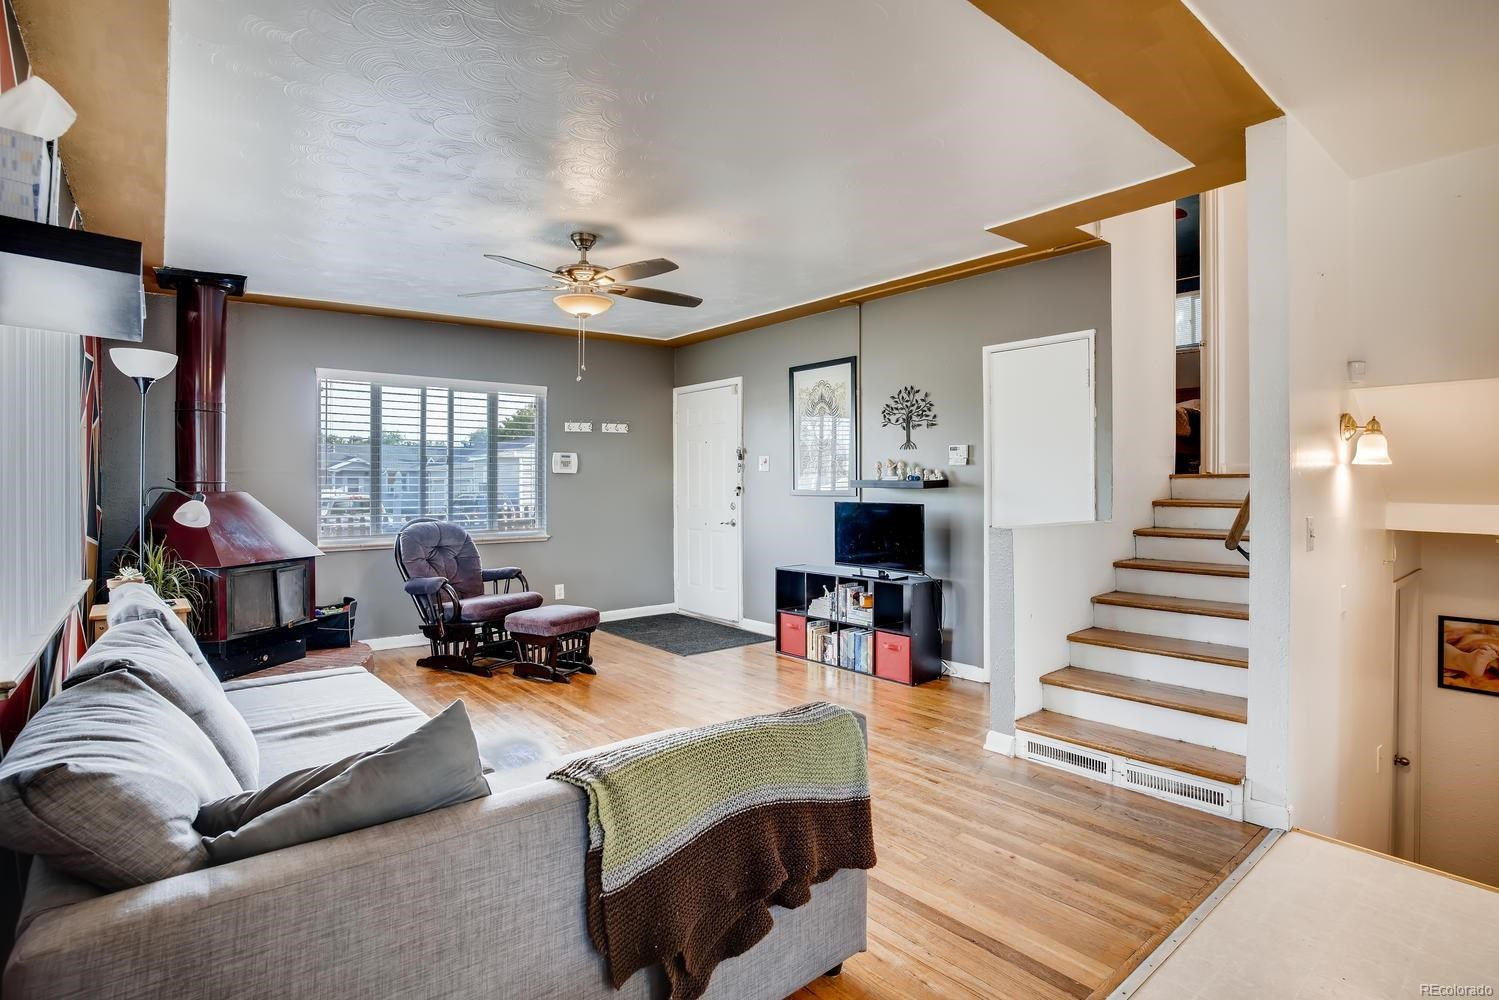 MLS# 3194522 - 8 - 4400 W Gill Place, Denver, CO 80219